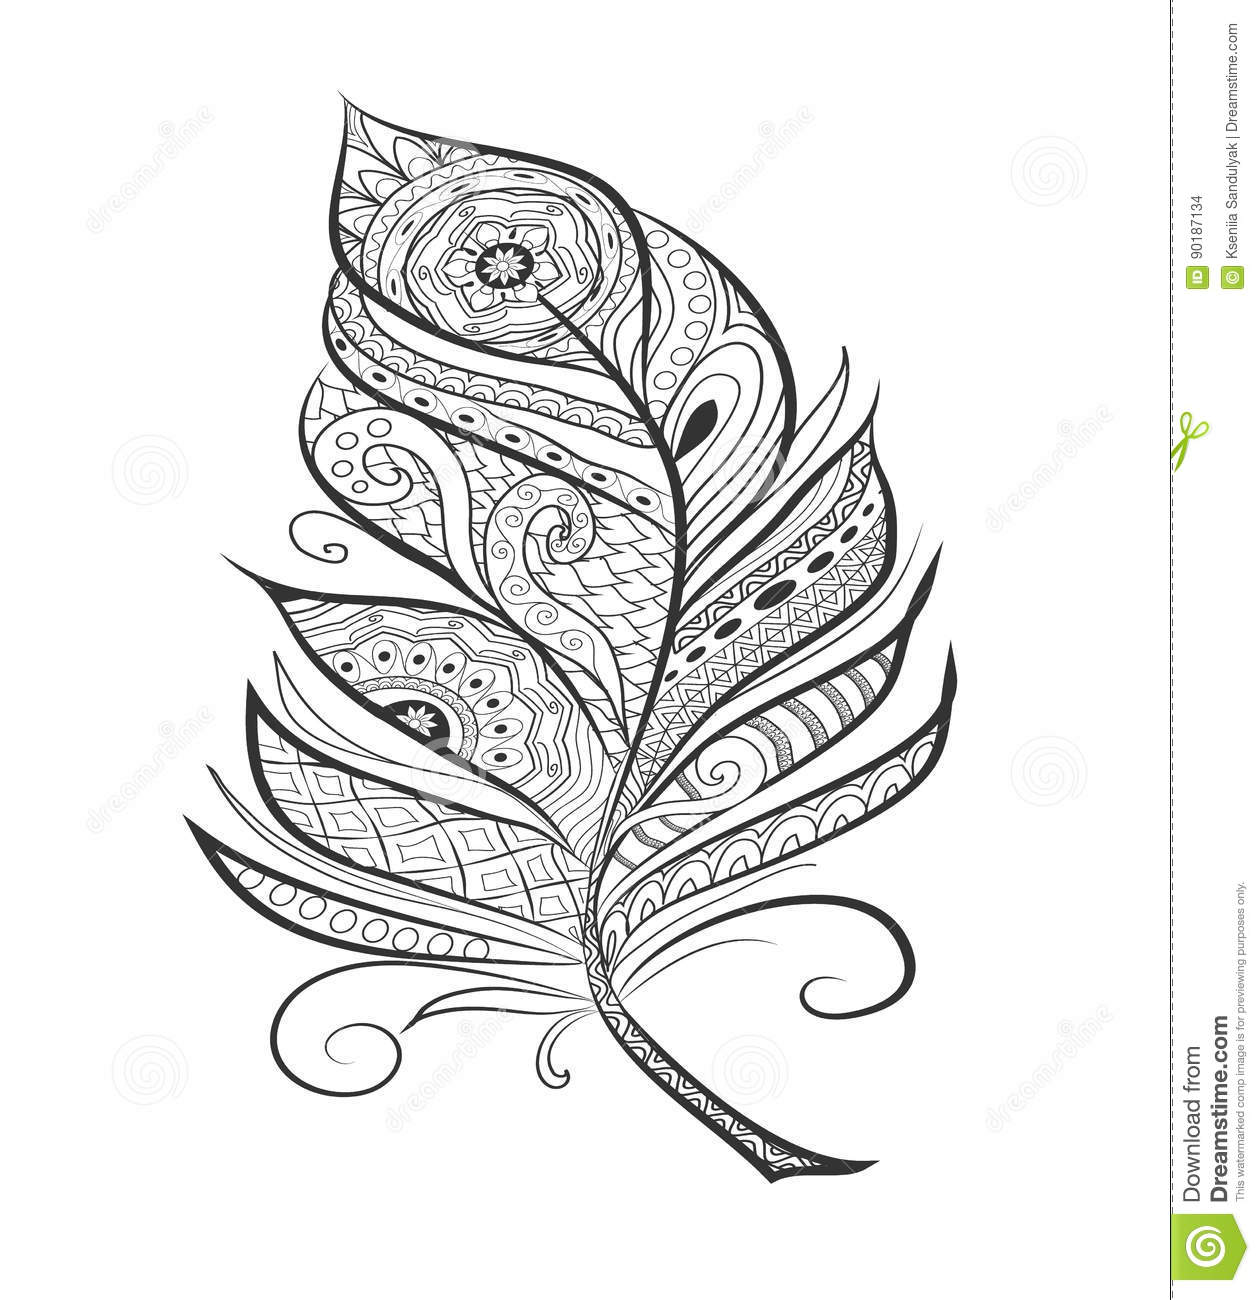 Zen Tangle Stylized Feather For Coloring Page. Stock Vector ...